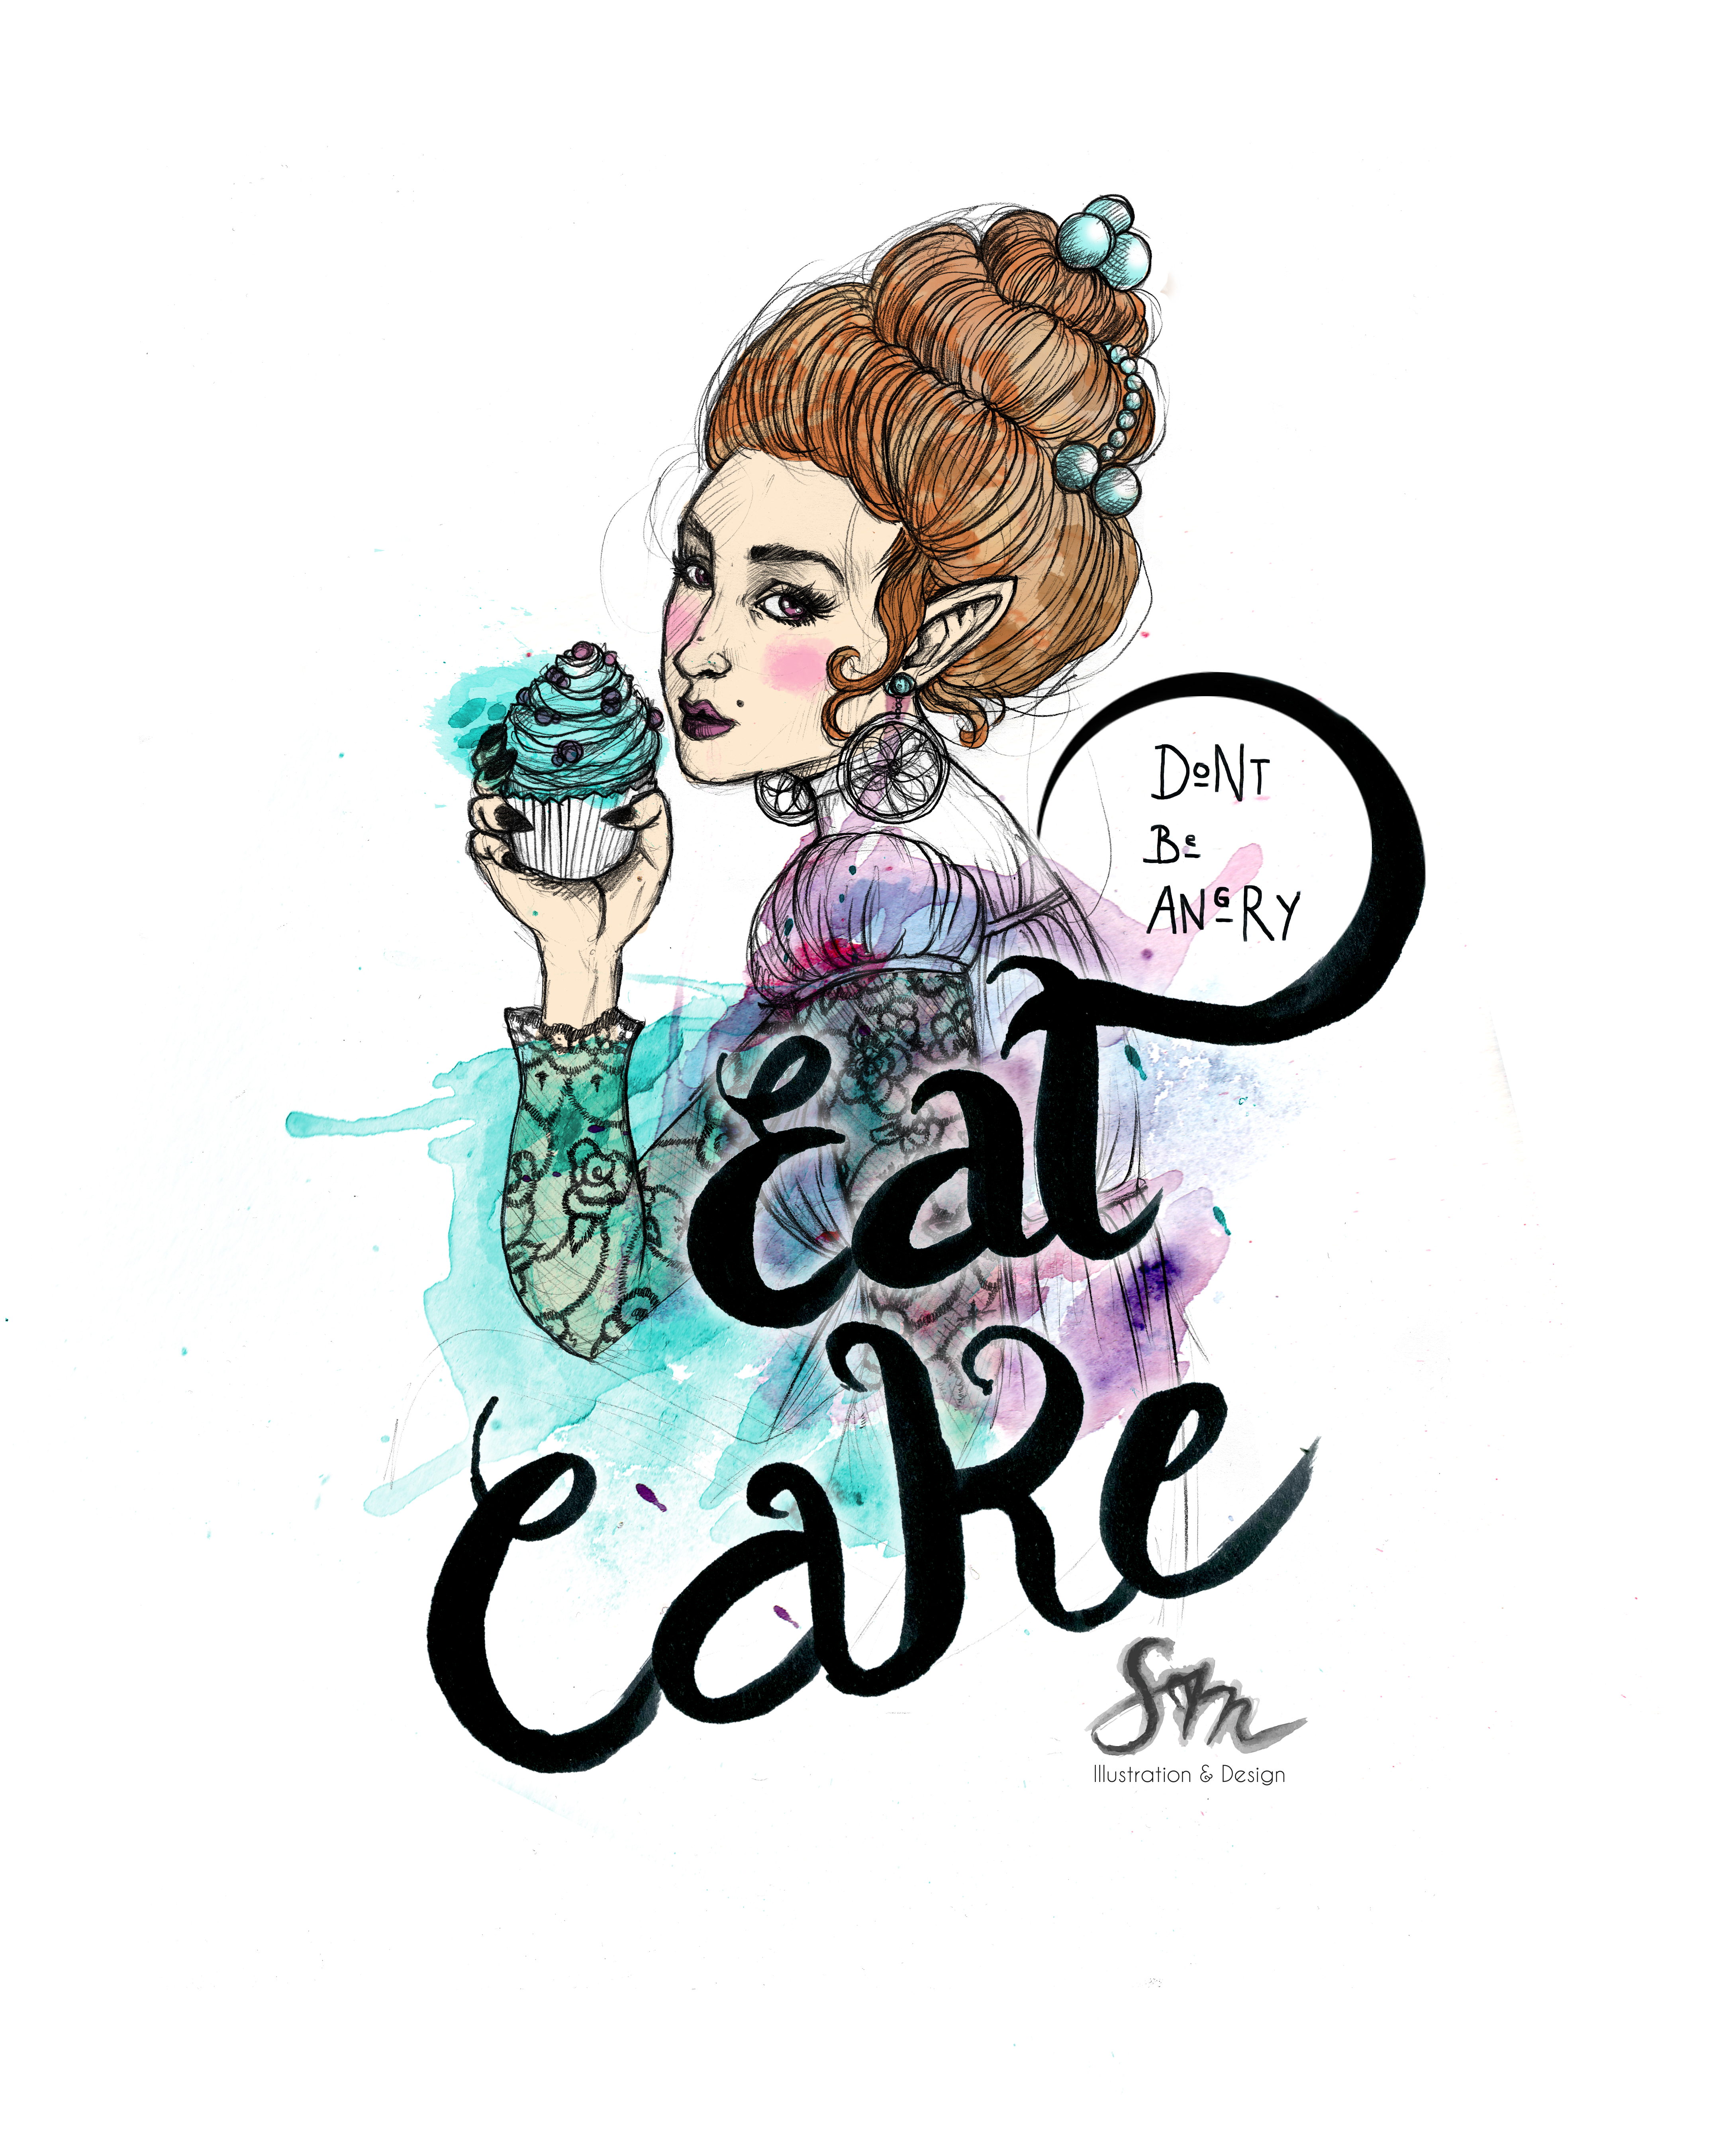 DontbeAngry-eatcake